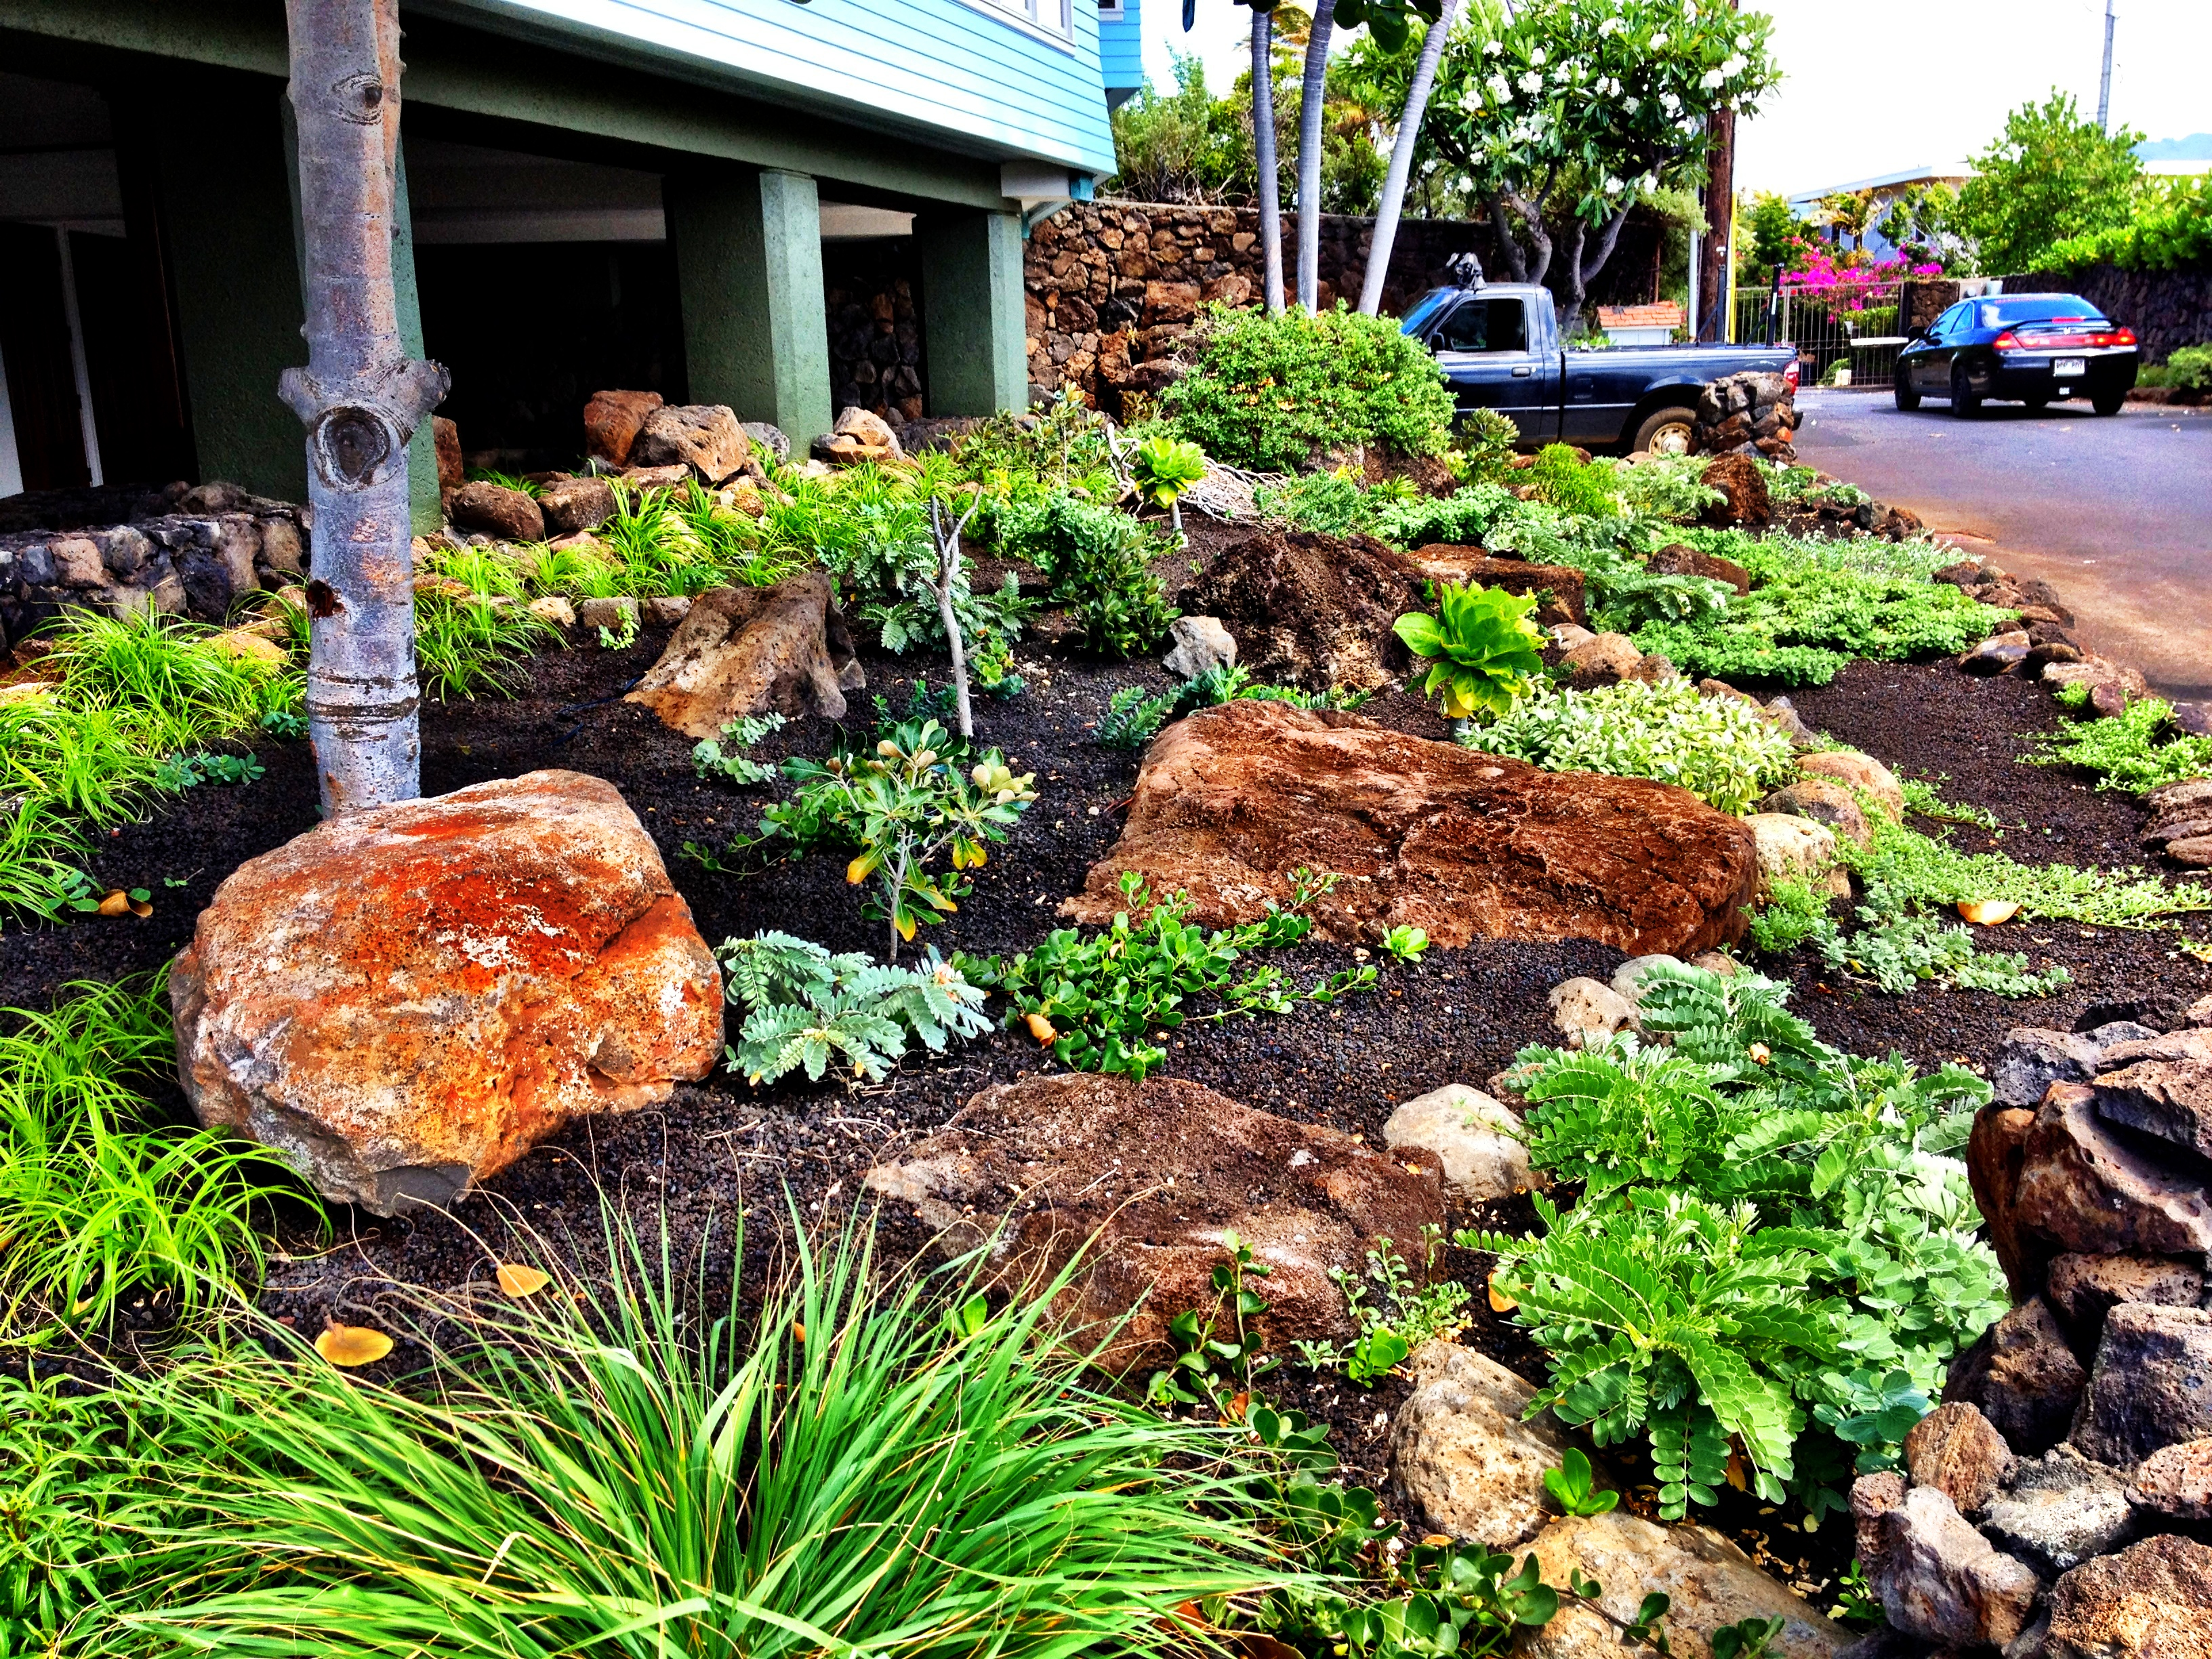 Landscaping Services on small desert yards, small cottage yards, small patio yards, small zen yards, small tropical yards, small concrete yards, small grass yards, small natural yards, small modern yards,